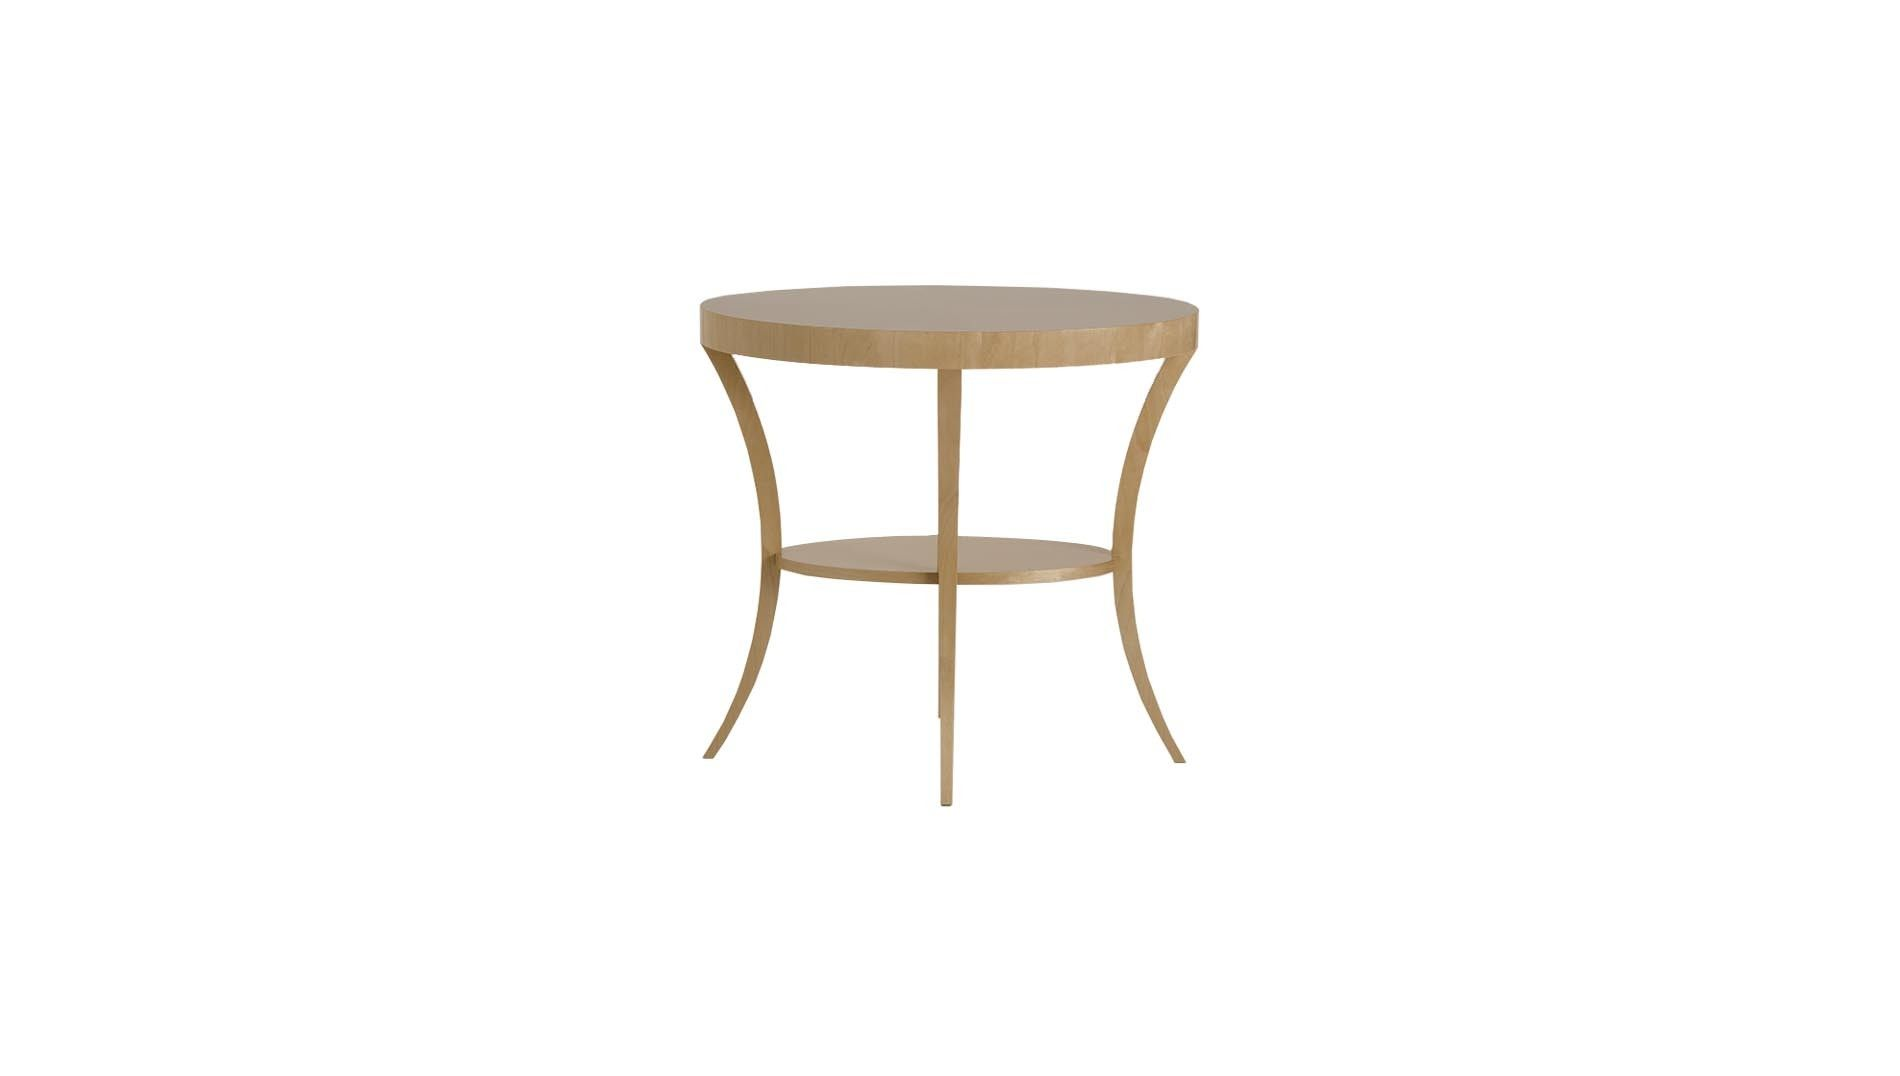 Helen Green, Tallulah Side Table, Buy Online at LuxDeco